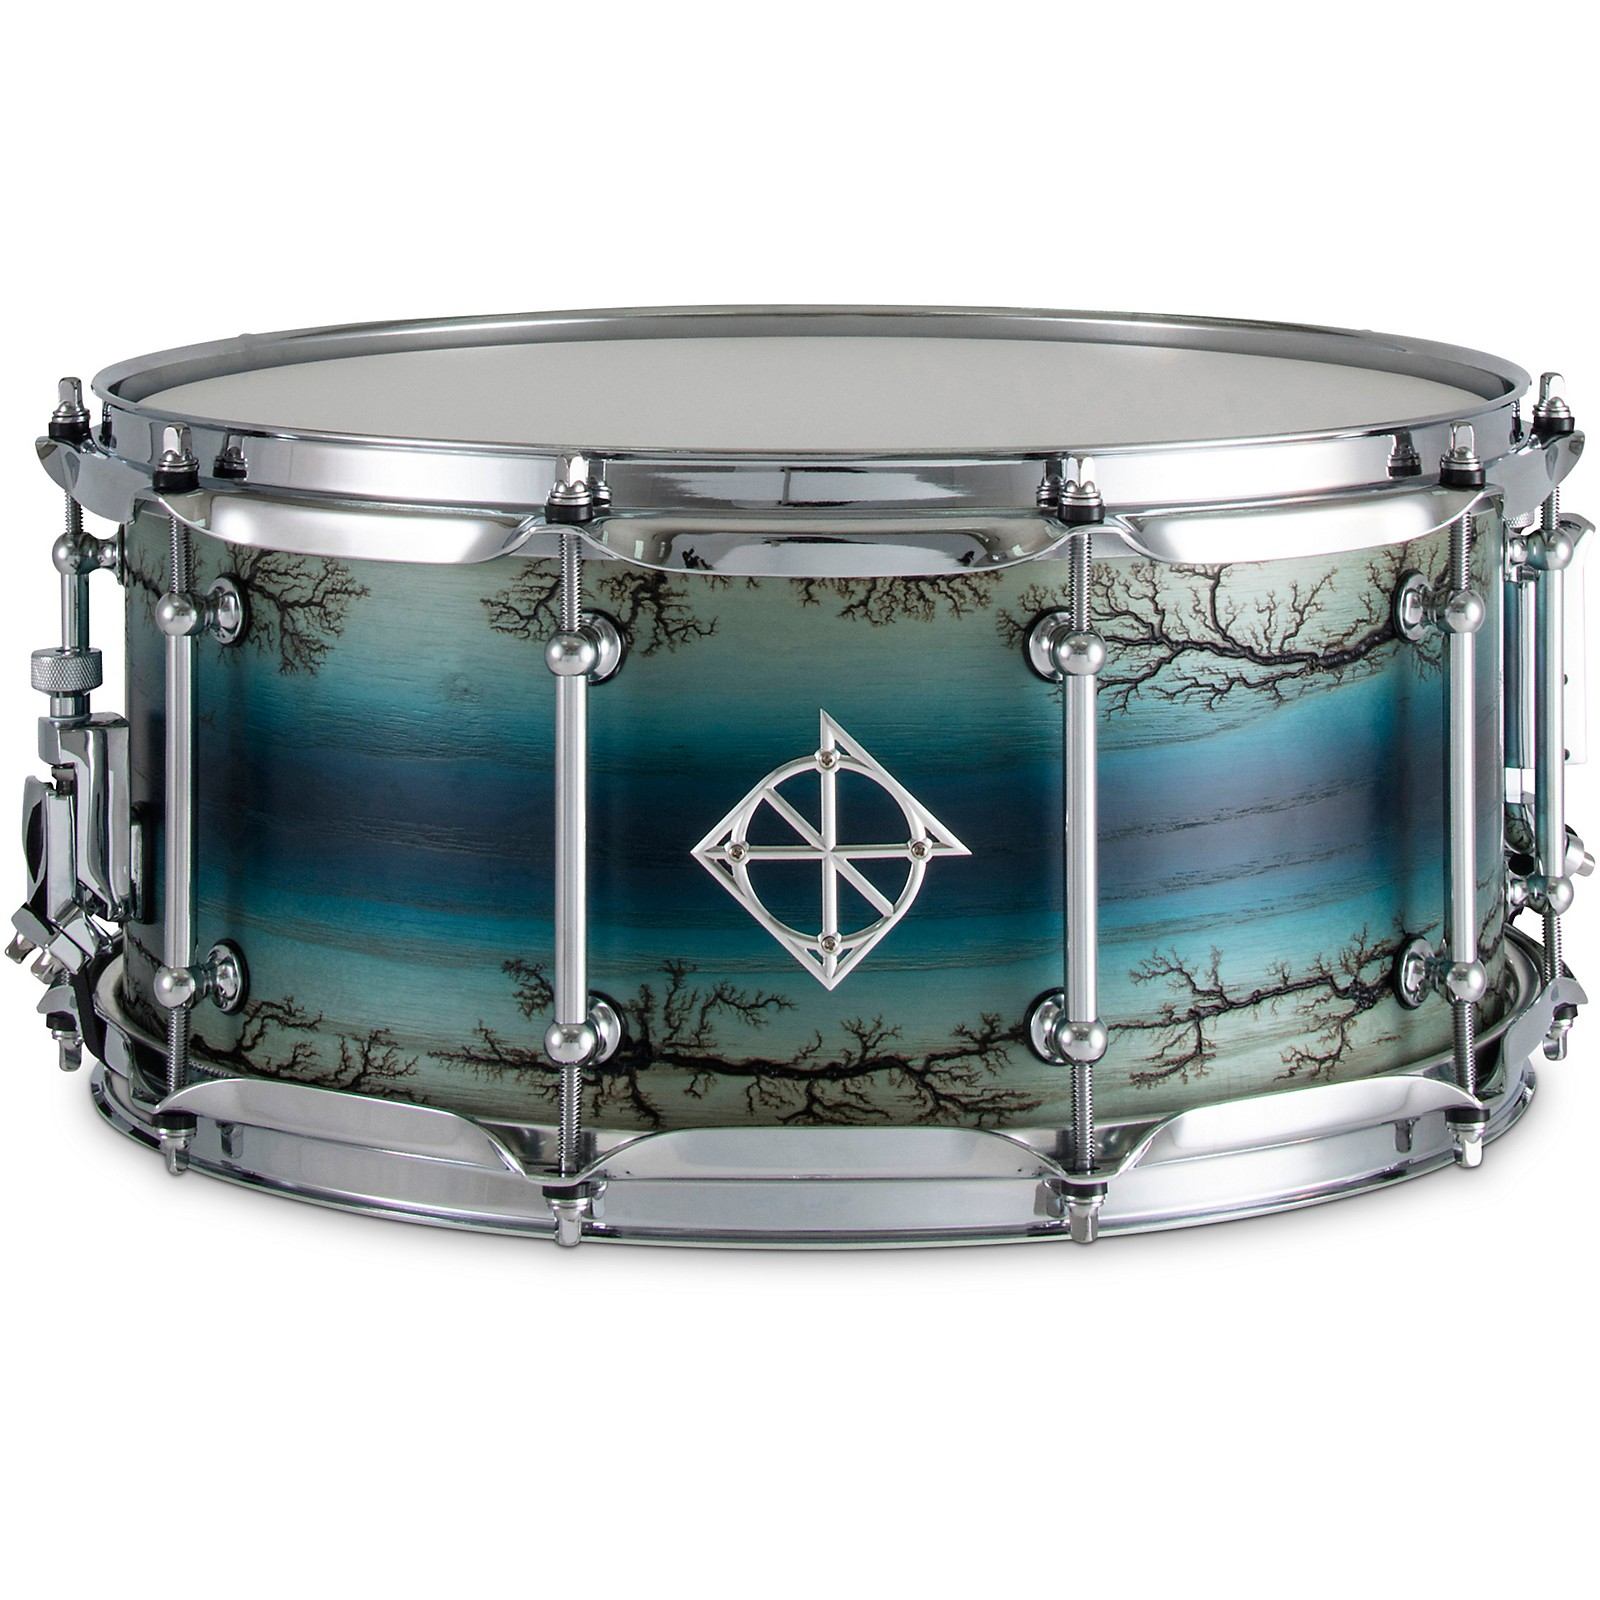 Dixon Artisan Enchanted Ash Snare Drum